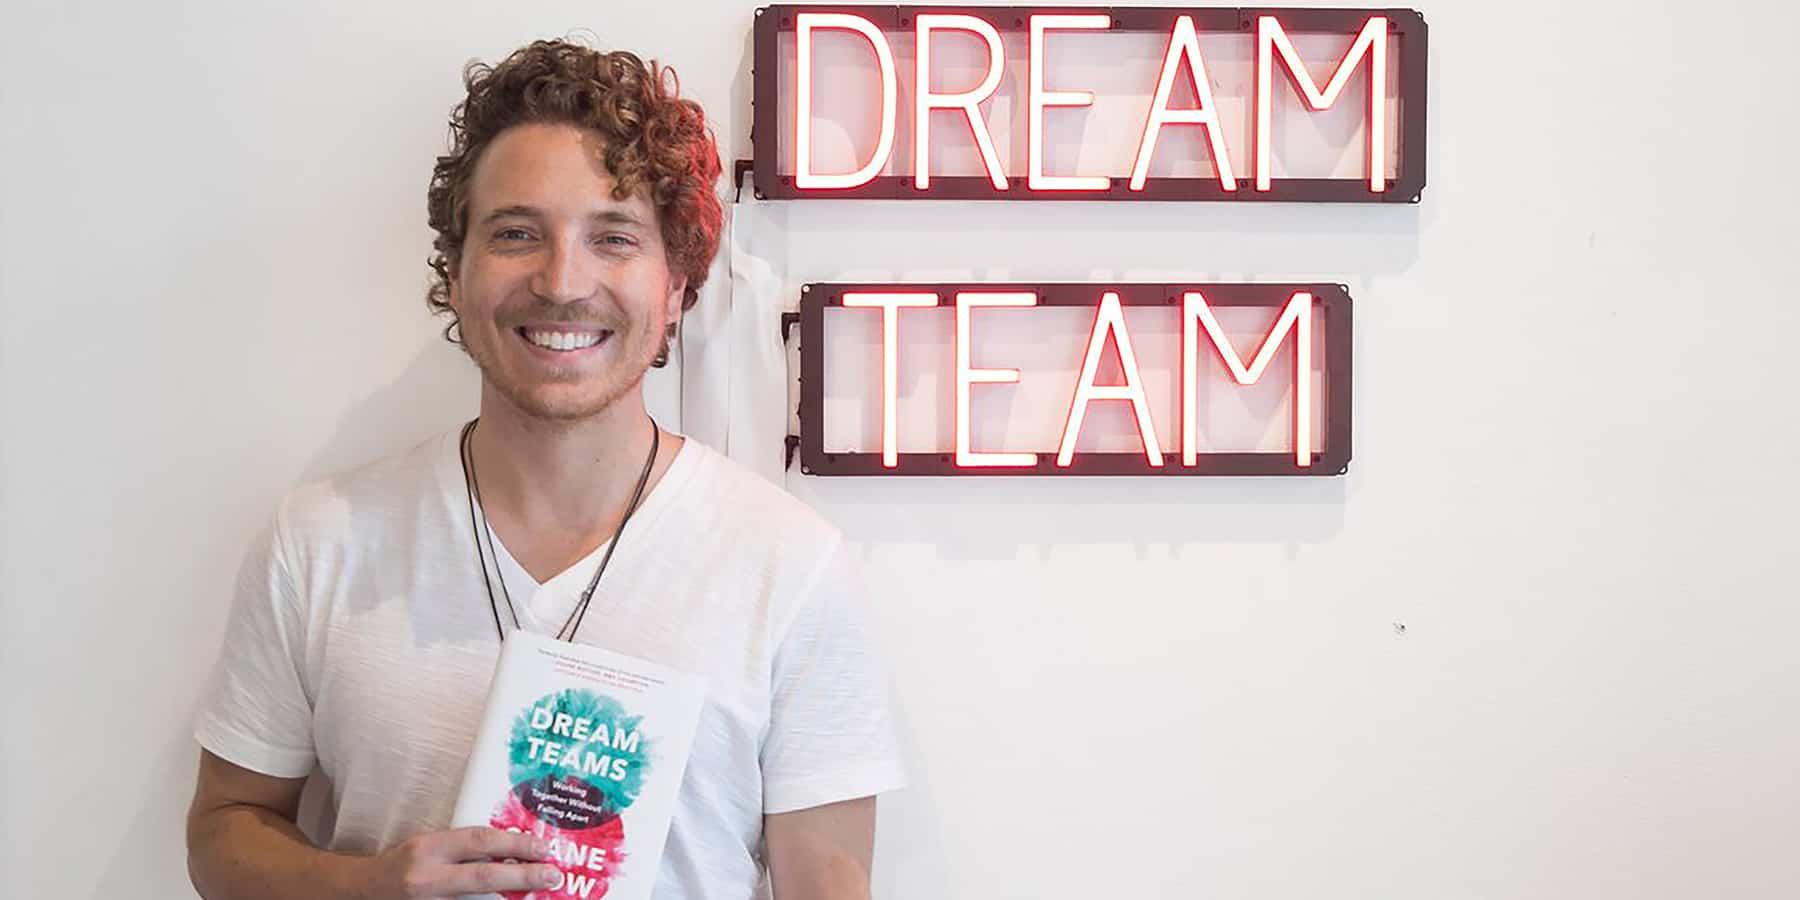 How Studying Dream Teams Helped Me Get Better At Content